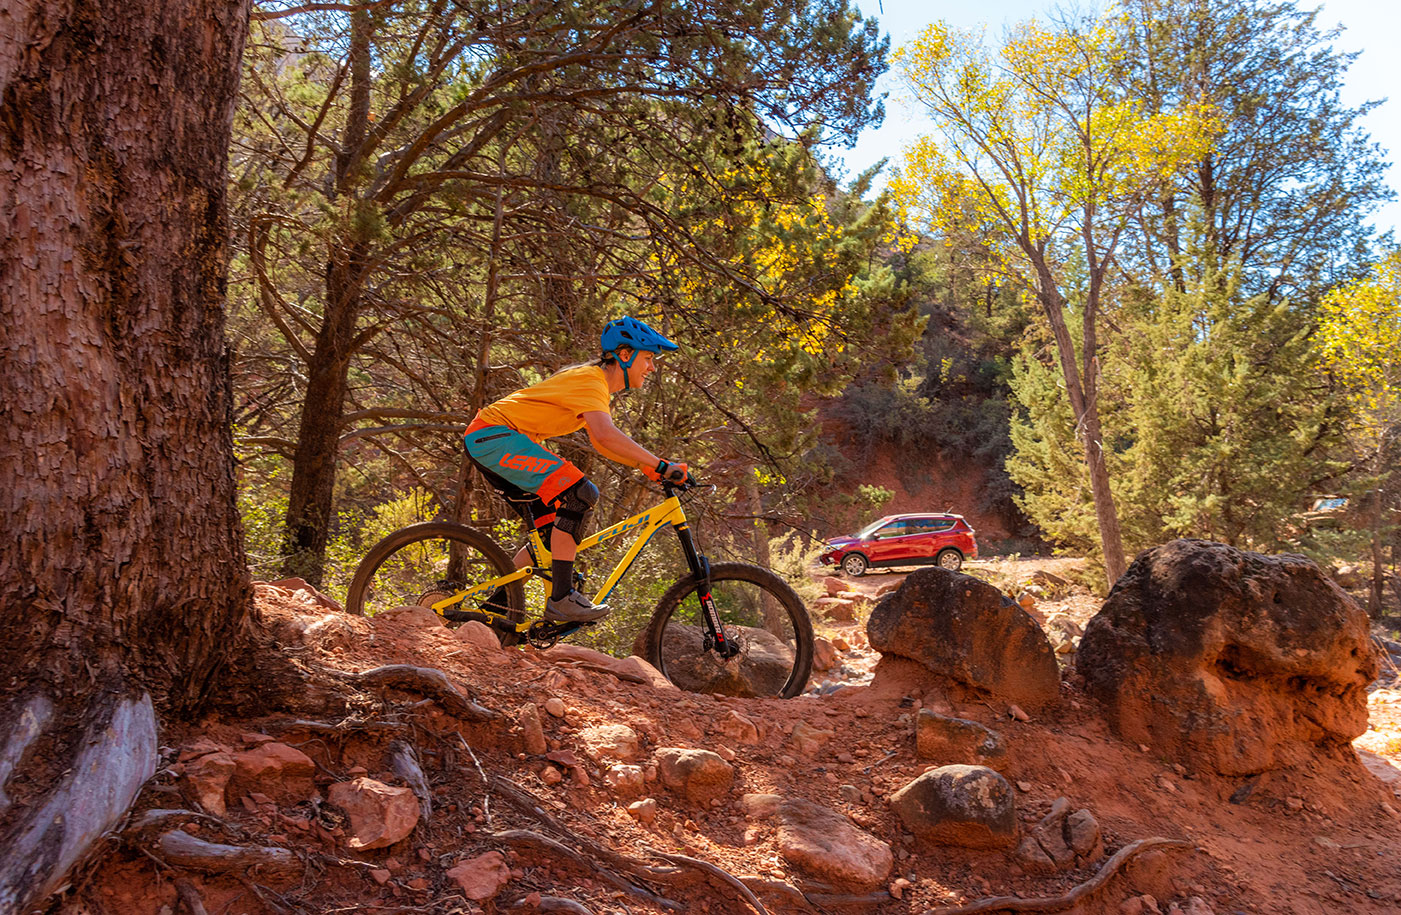 Mountain Biker Lauren Gregg cruising red rock of Sedona, Az. Daniel Britton, Lifestyle, Adventure Photographer